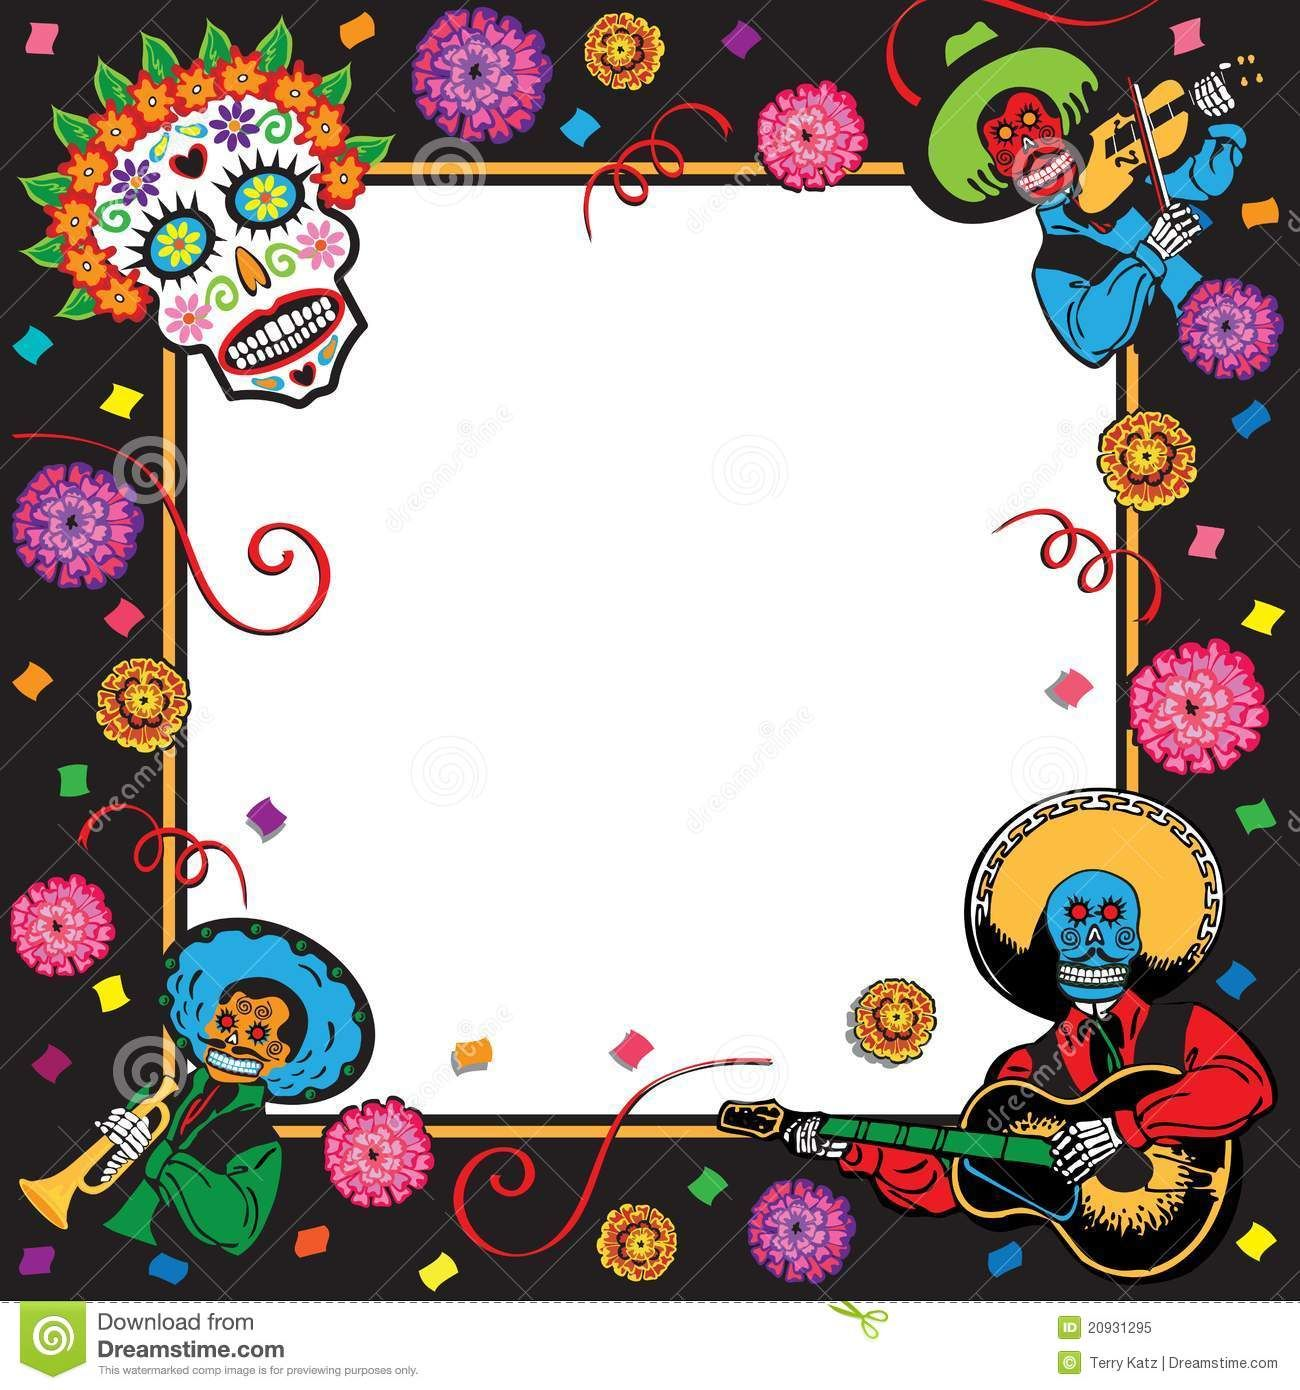 Day Of The Dead Party Invitations Party Invite Template Day Of The Dead Party Mexican Party Invitation